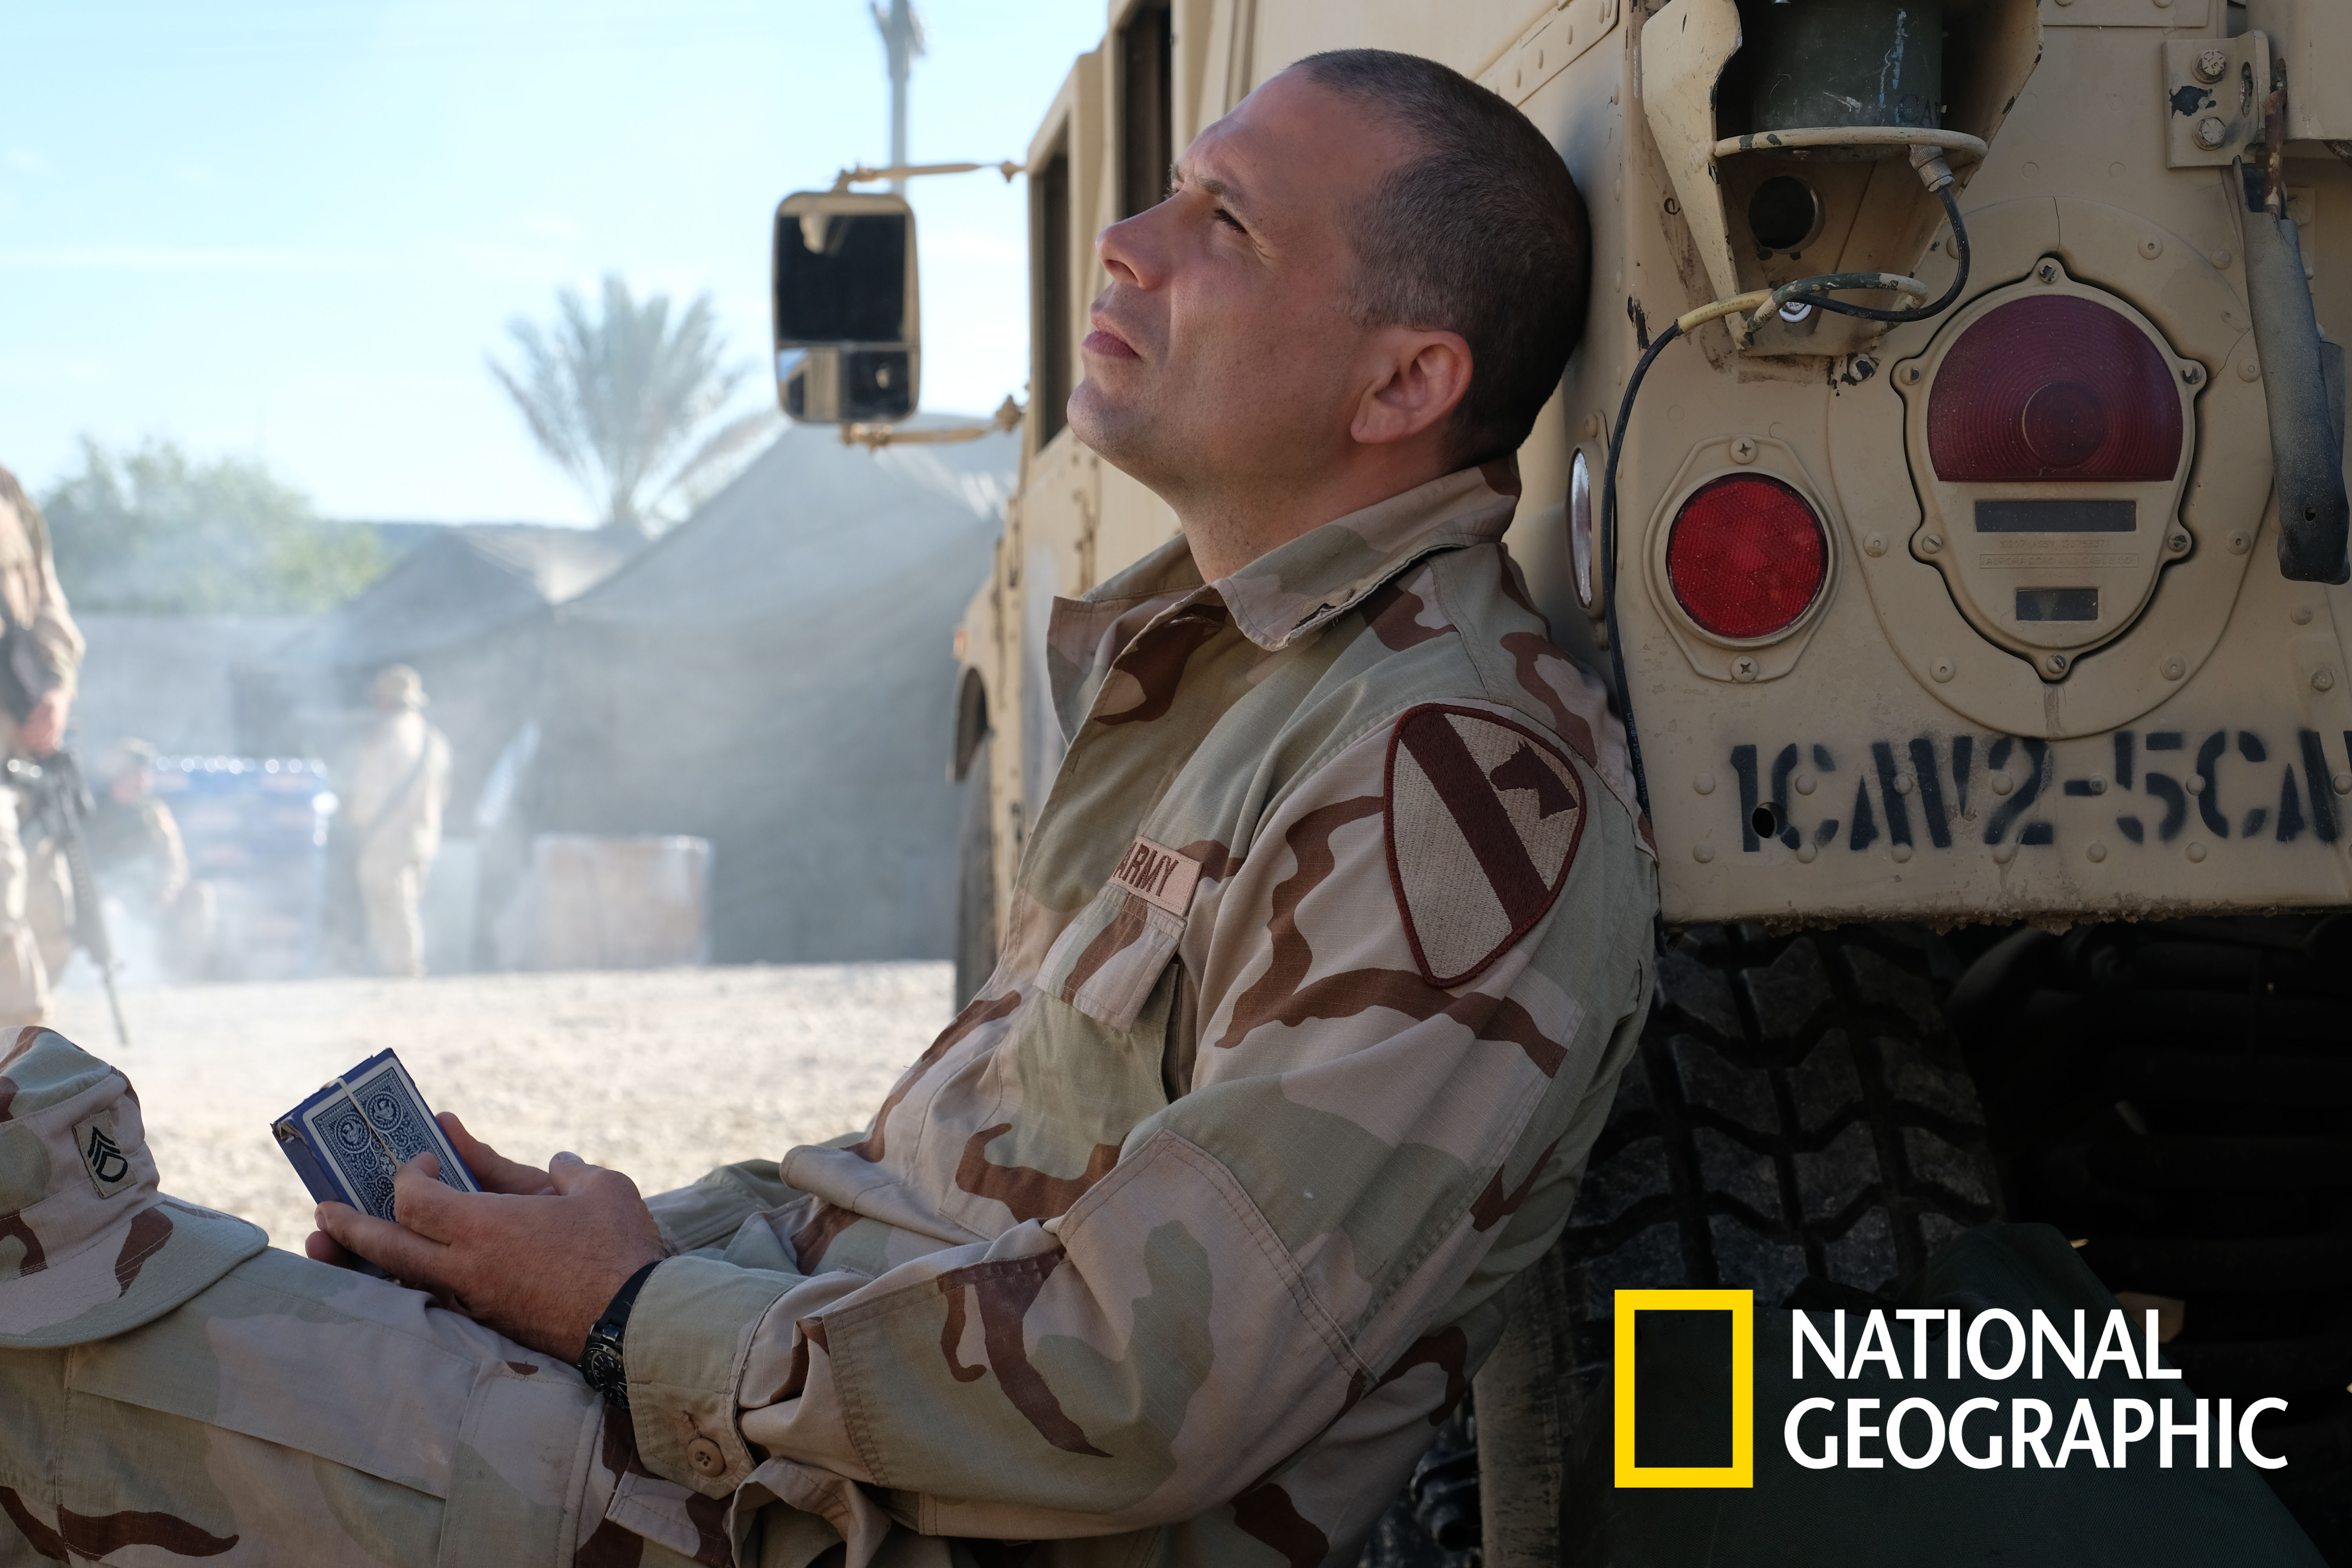 National Geographic Startet Neue Eventserie The Long Road Home